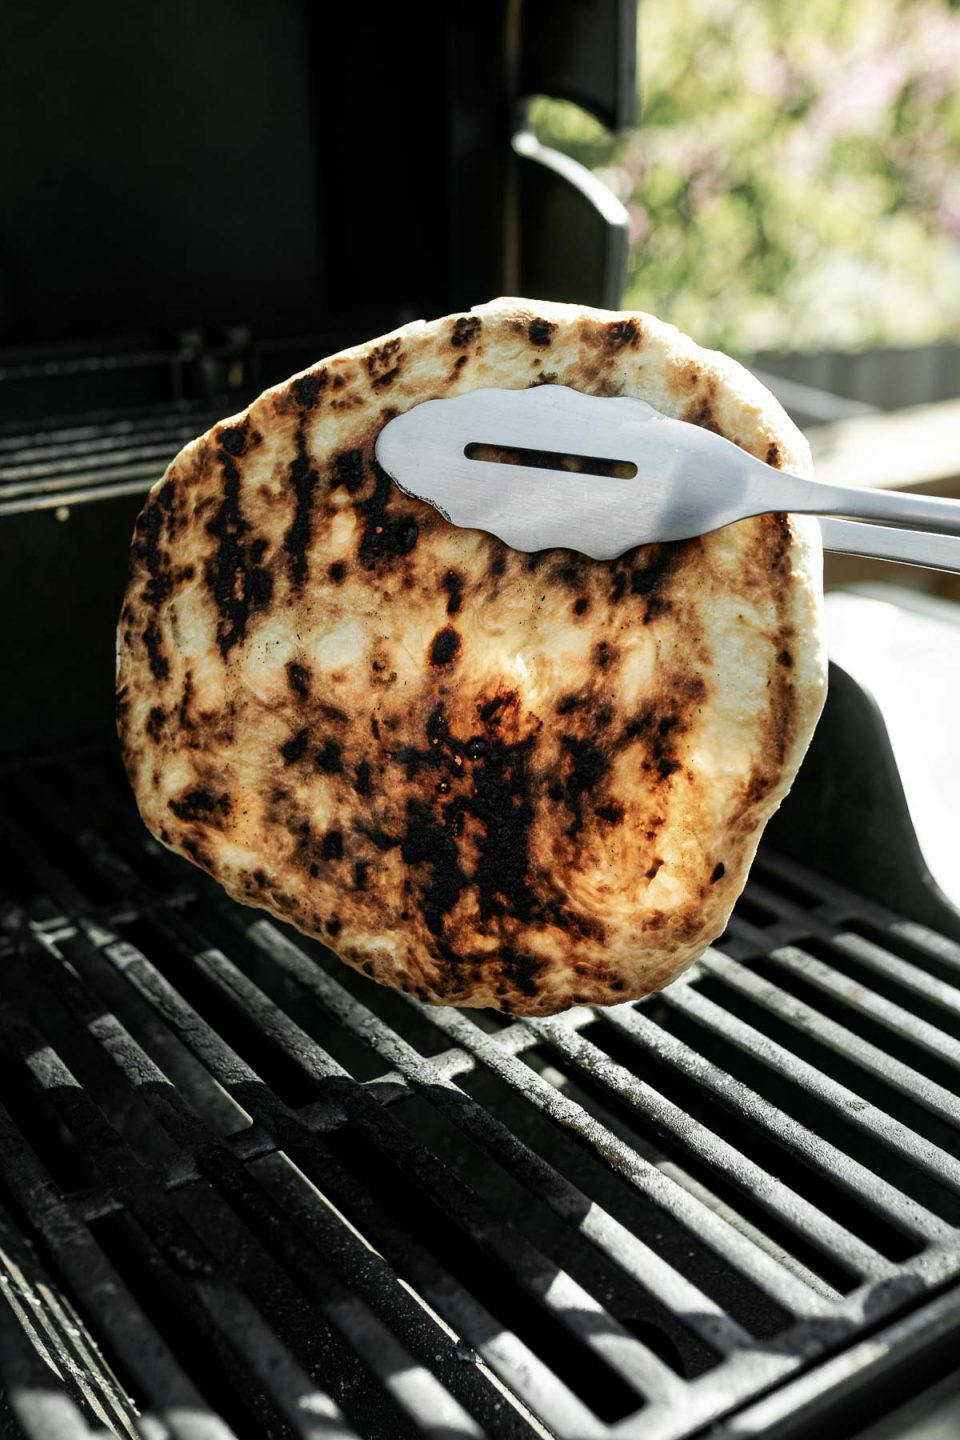 How to grill pizza, Step 4: Grilling tongs holding up par grilled pizza crust over grill grates, revealing perfectly grilled bottom.